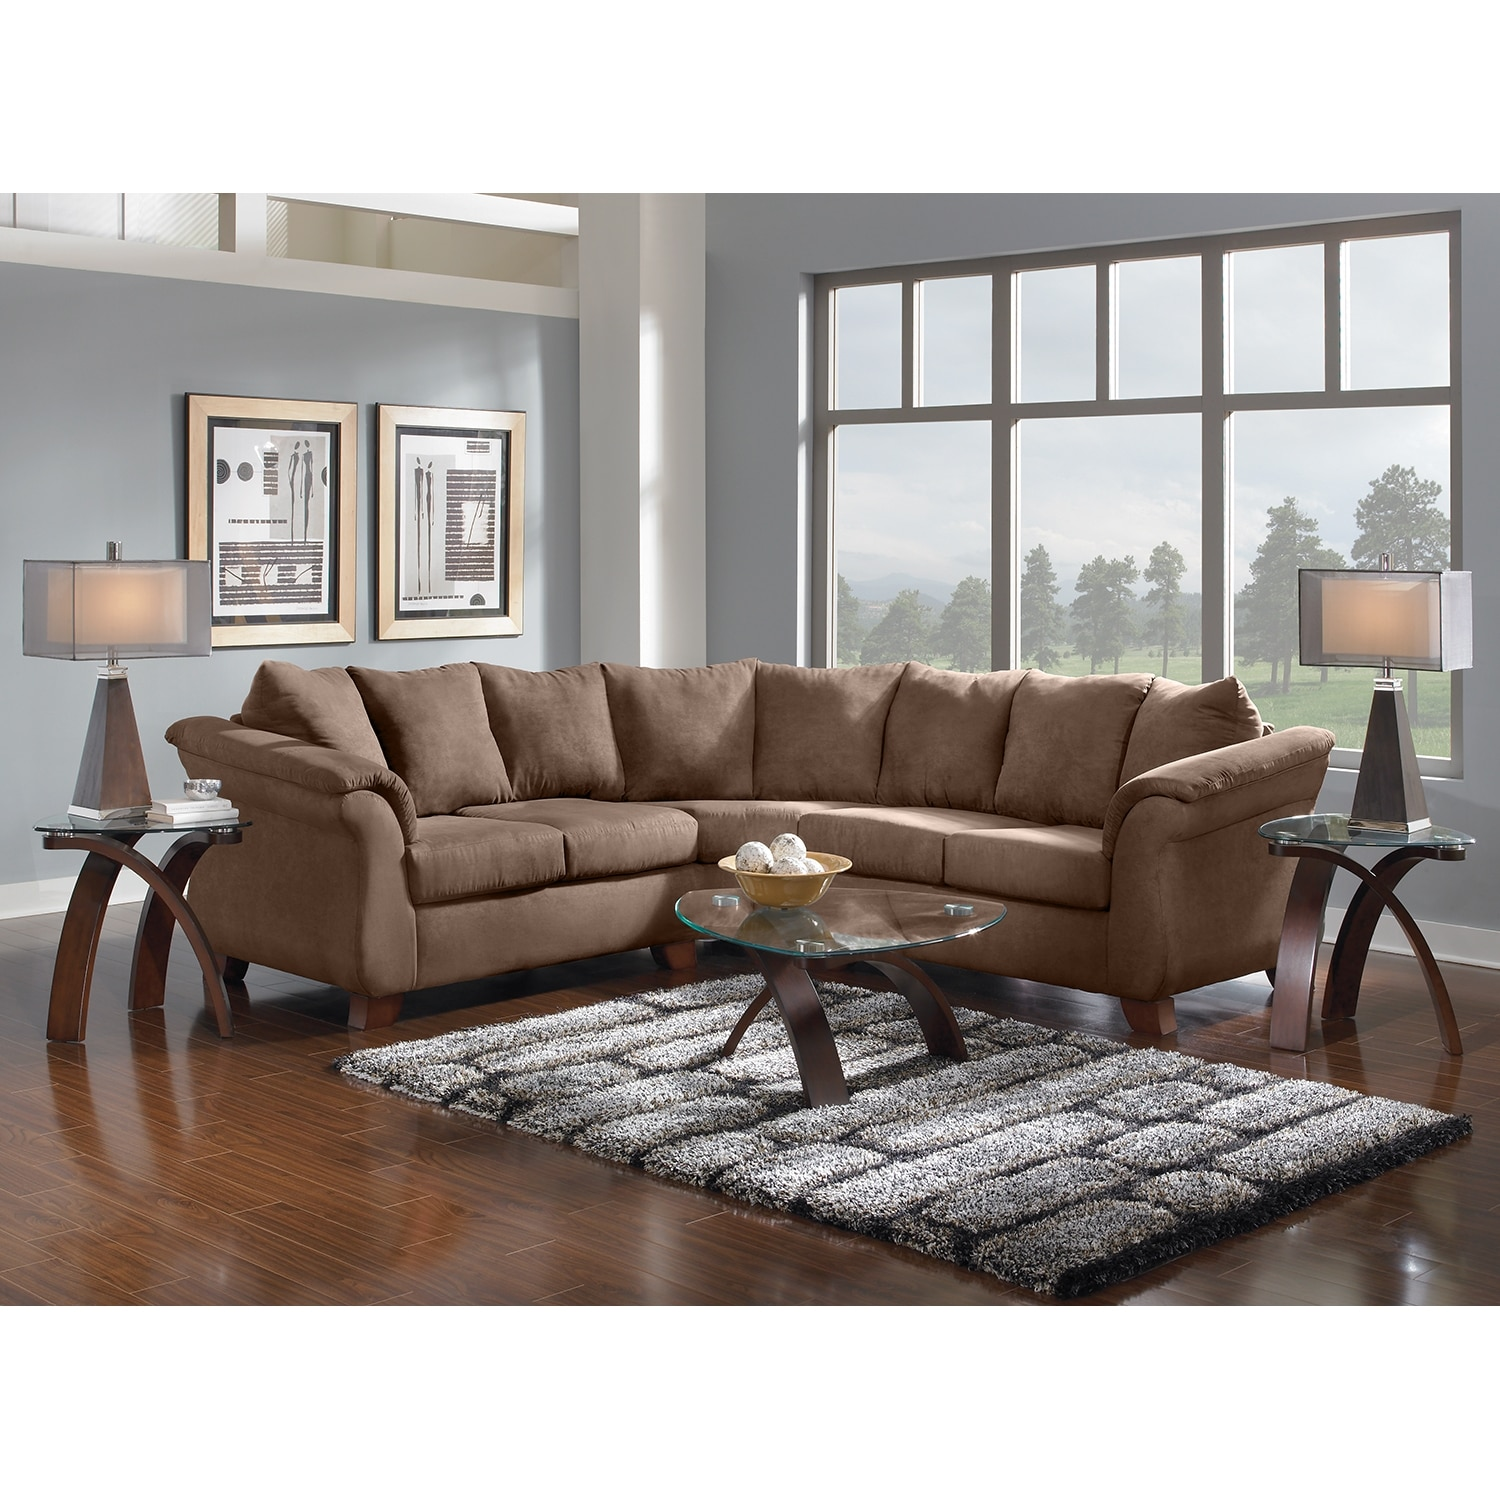 Adrian 2 Piece Sectional Taupe Value City Furniture